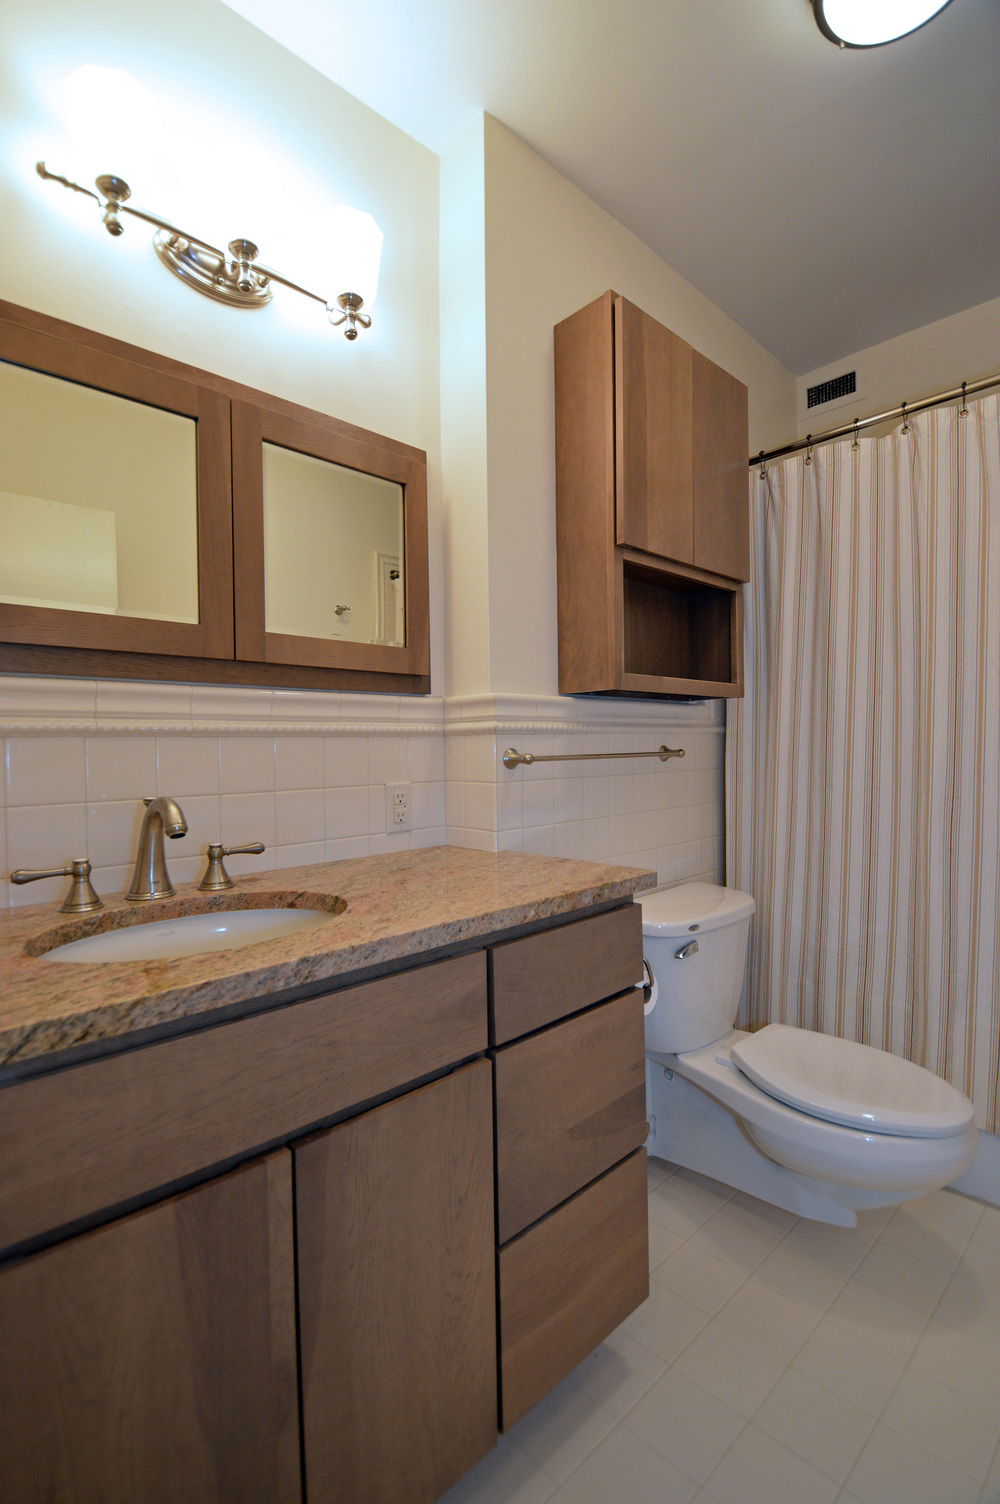 Condo bathroom renovation in Philadelphia, PA